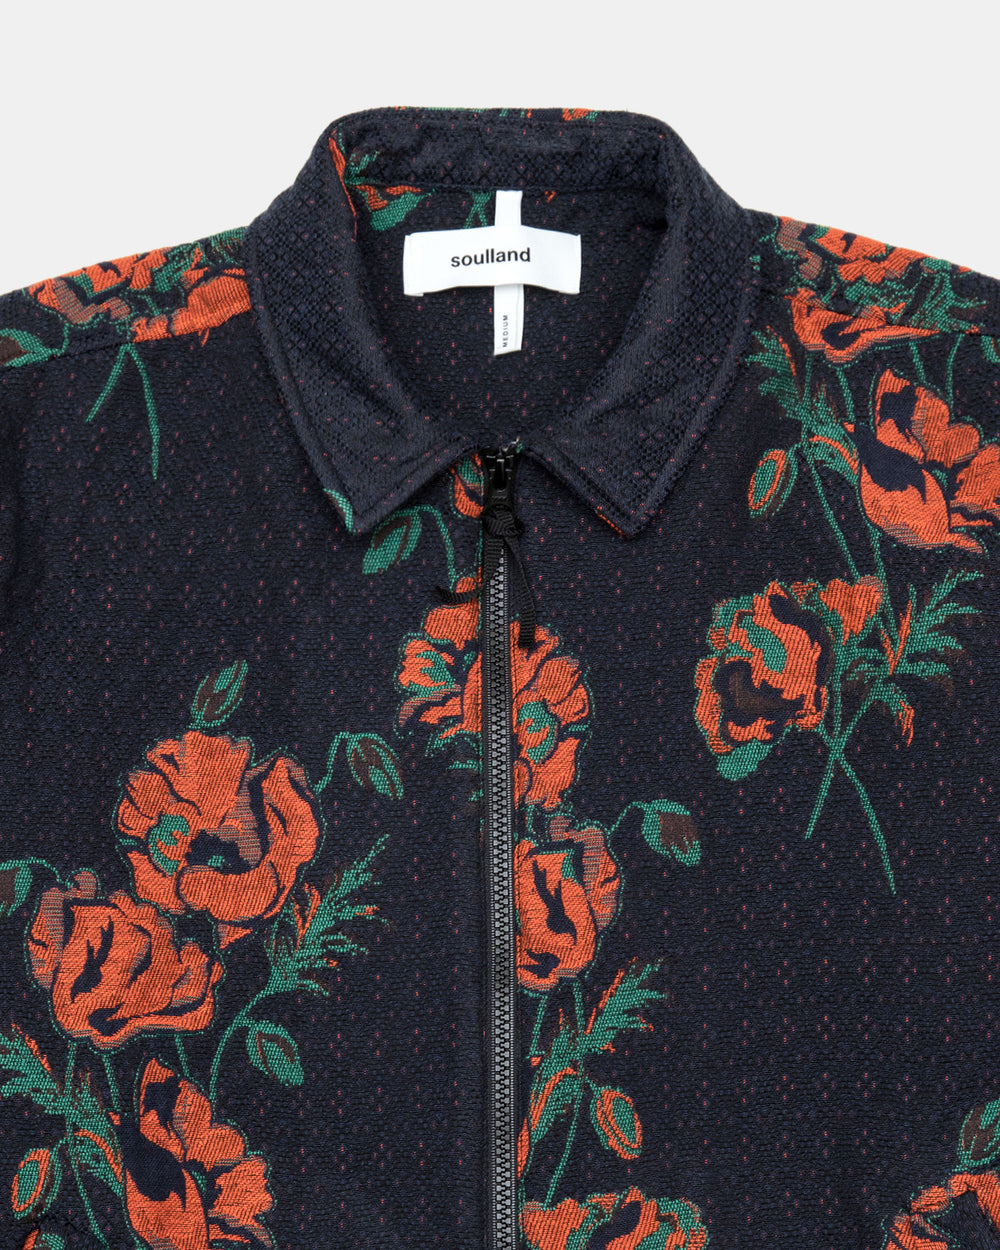 Soulland - Mapp Light Zip Jacket (Floral)